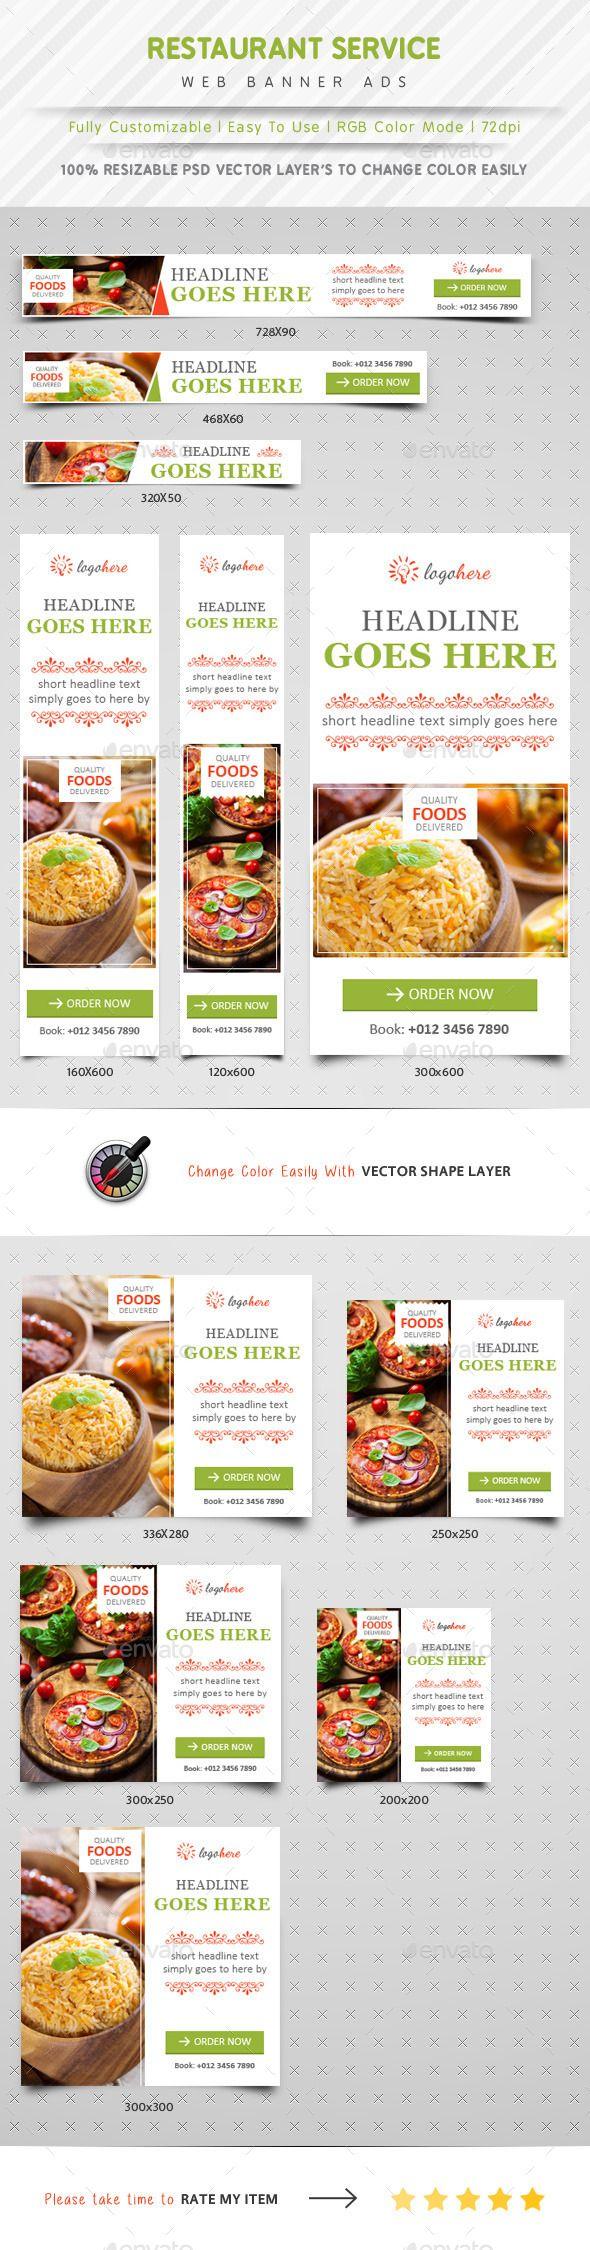 Restaurant Service Web Banner Ads Template #banner #web #webdesign Download: http://graphicriver.net/item/restaurant-service-web-banner-ads/10690283?ref=ksioks